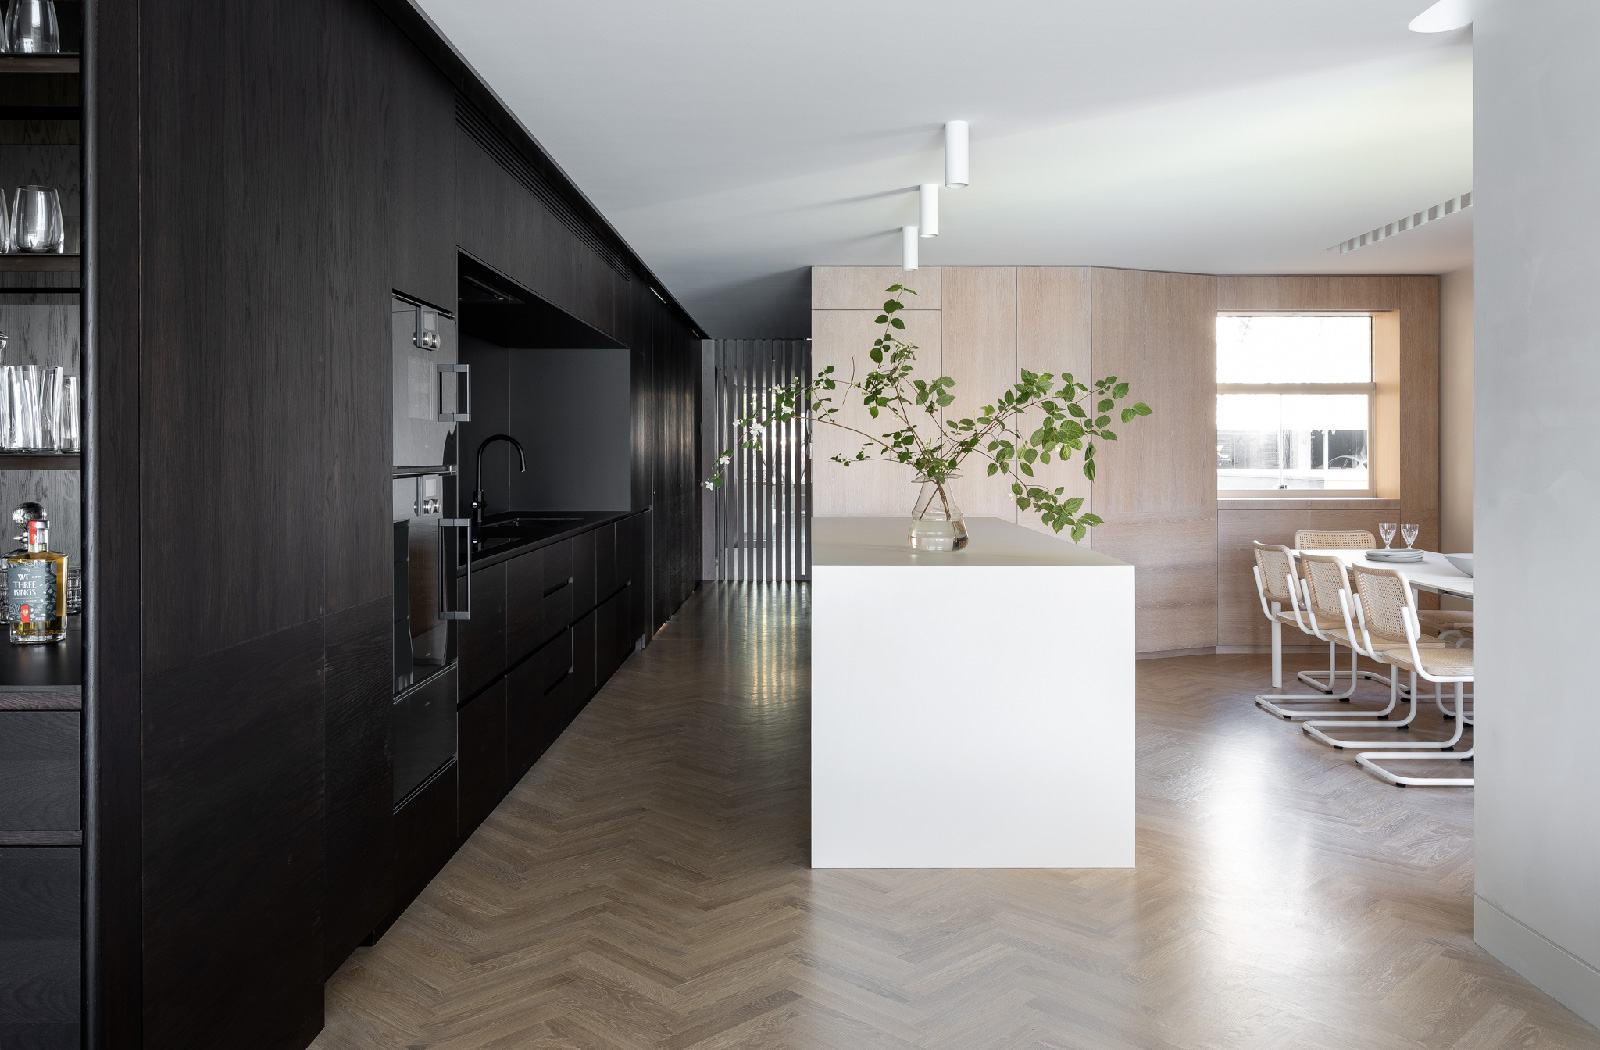 Kirribilli Apartment kitchen- an interior fit-out project by McGregor Westlake Architecture